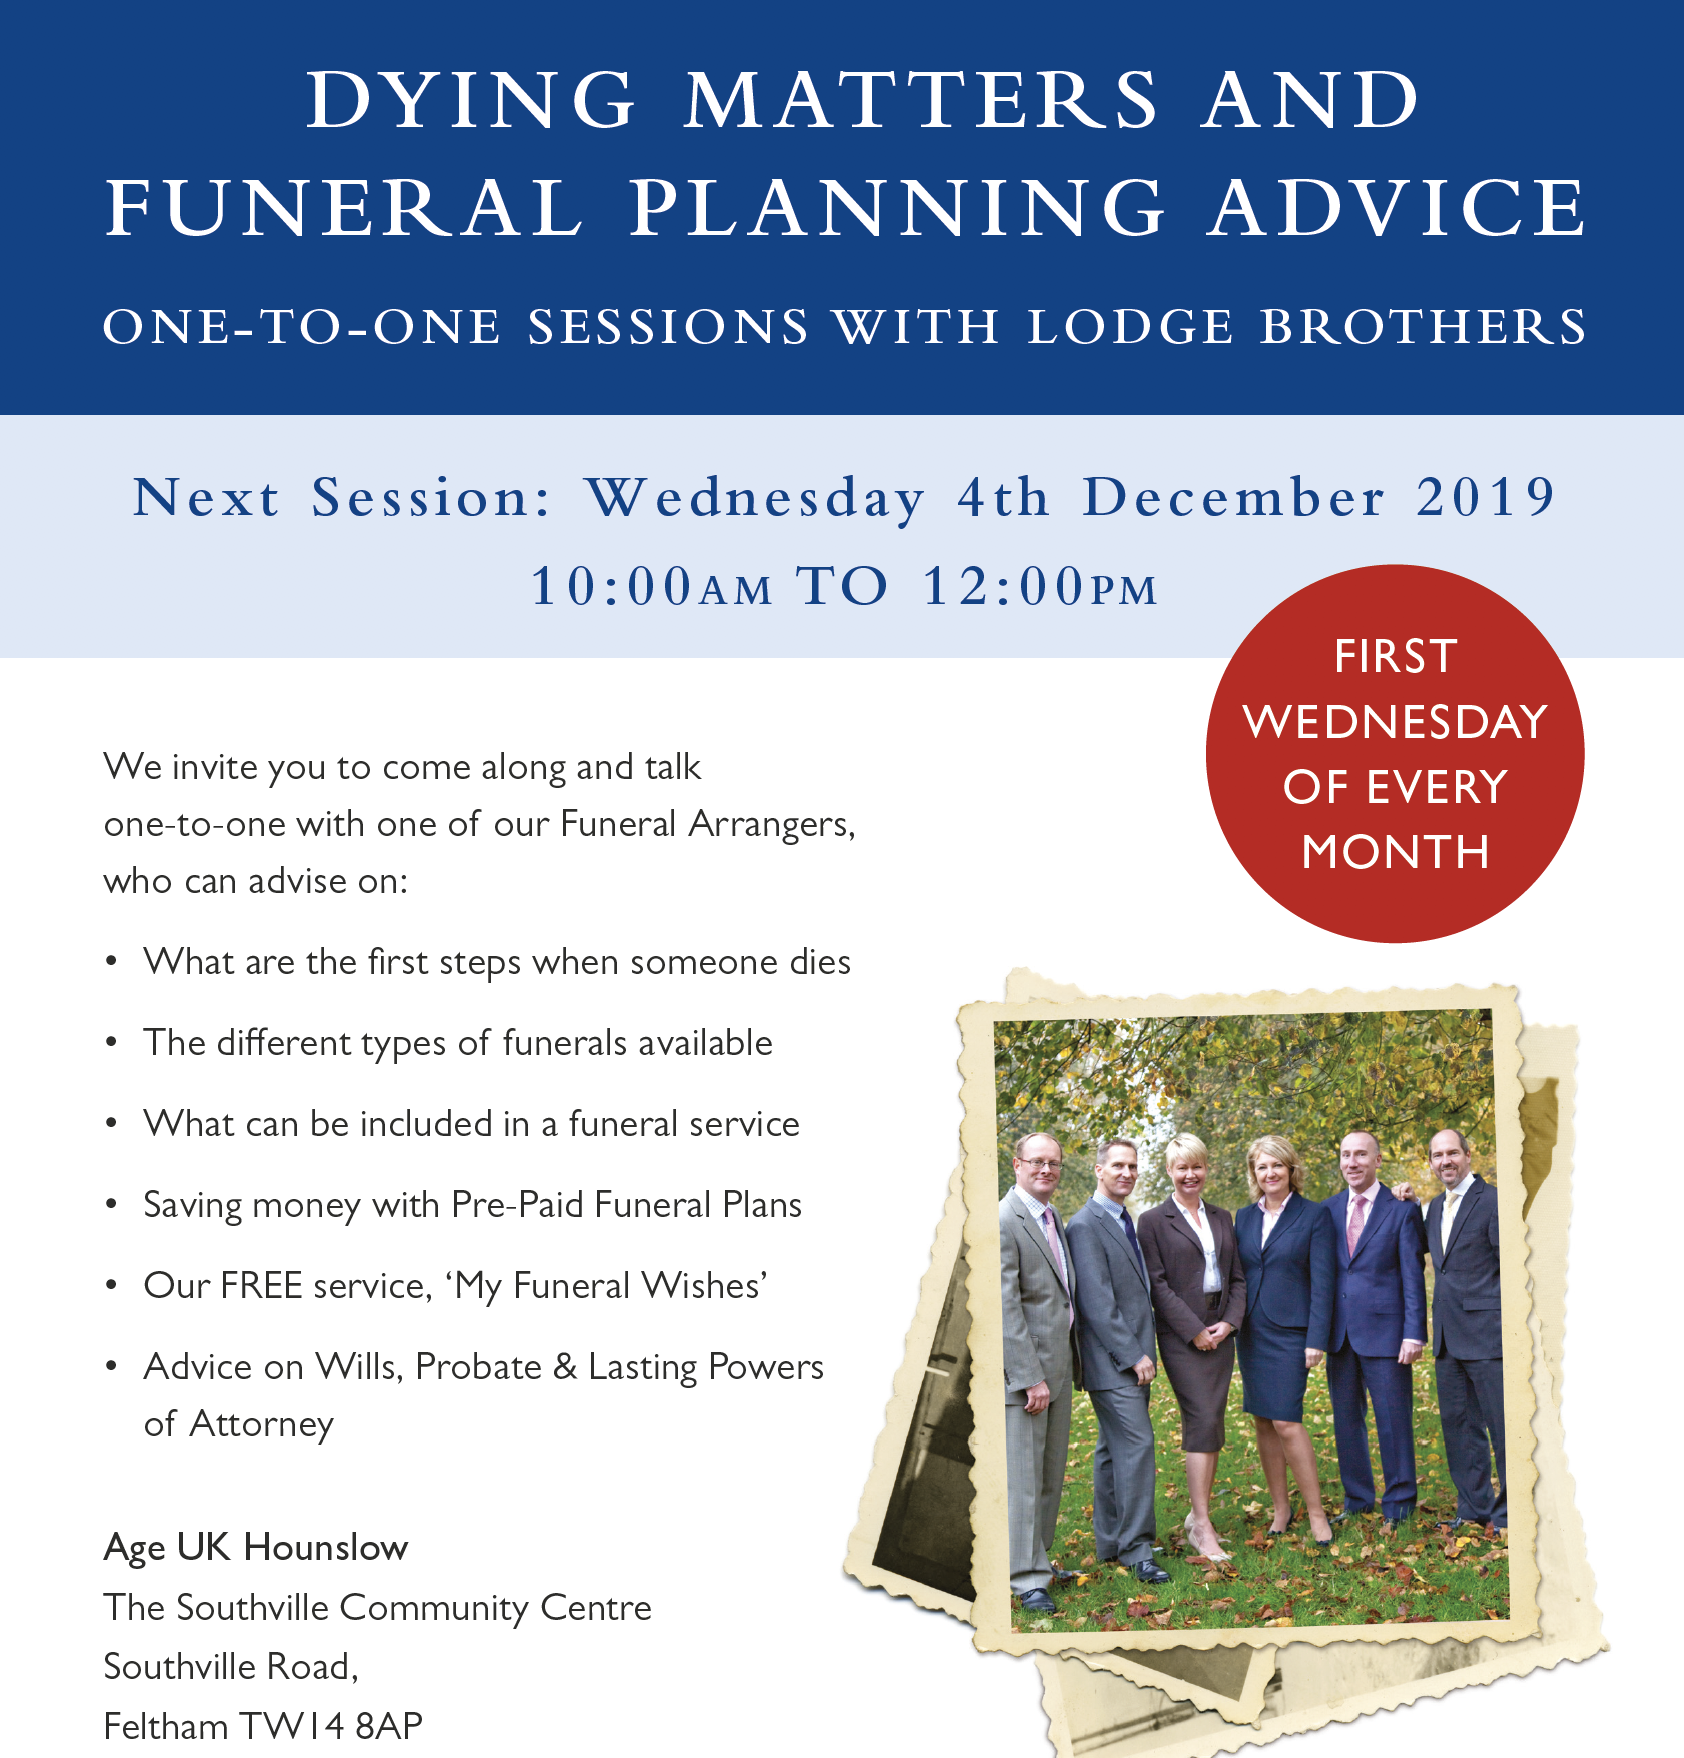 1-2-1 Advice Sessions on Dying Matters & Funeral Planning